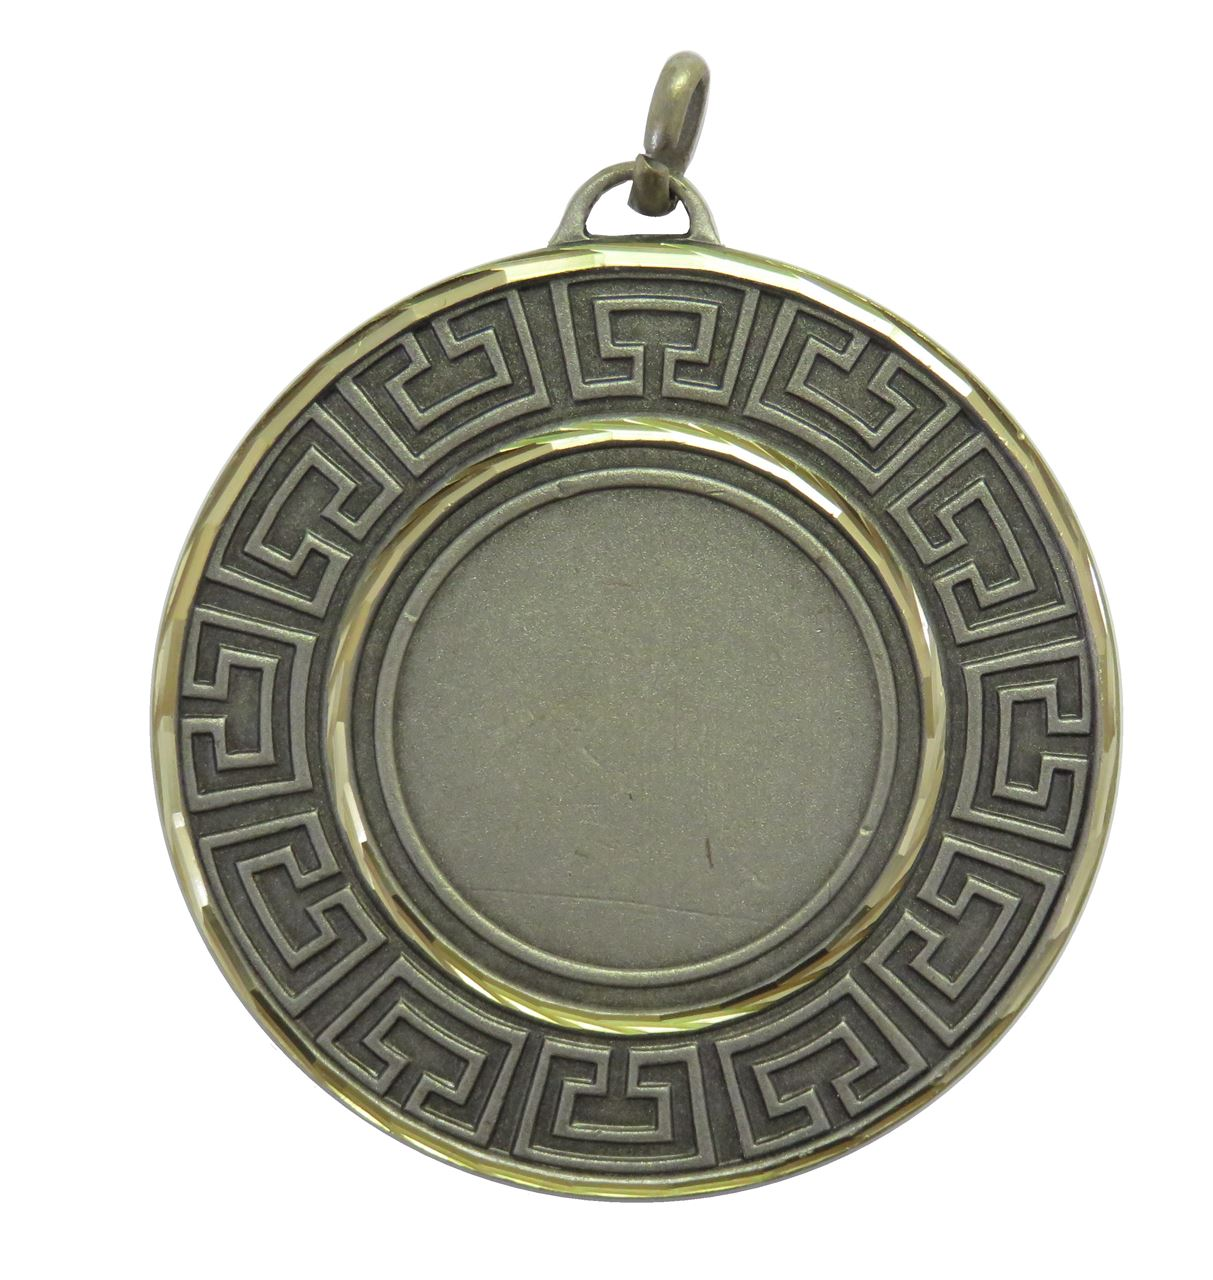 Silver Faceted Athena Medal (sizes: 50mm) - 5555F